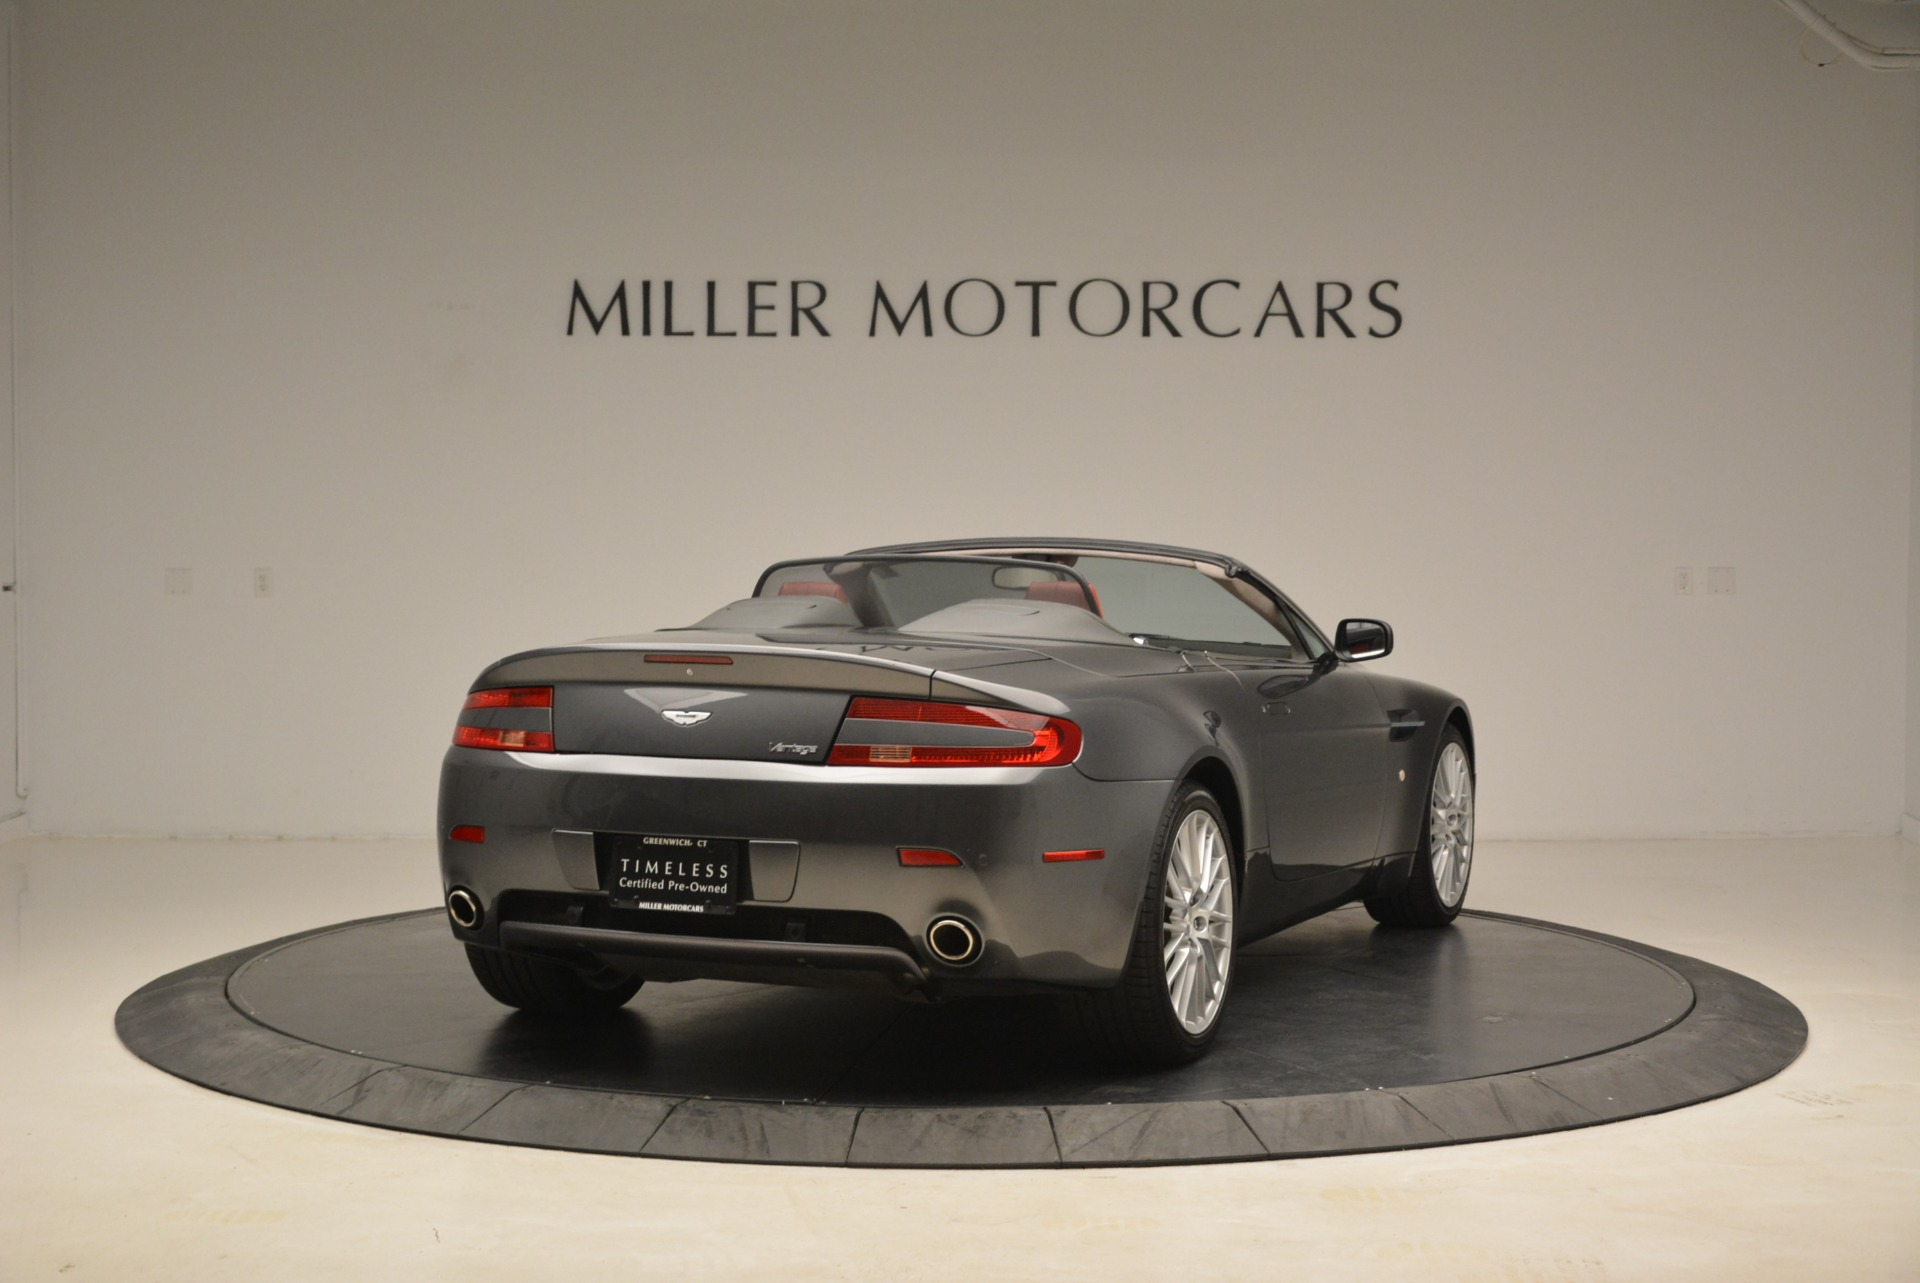 Used 2009 Aston Martin V8 Vantage Roadster For Sale In Greenwich, CT 2123_p7